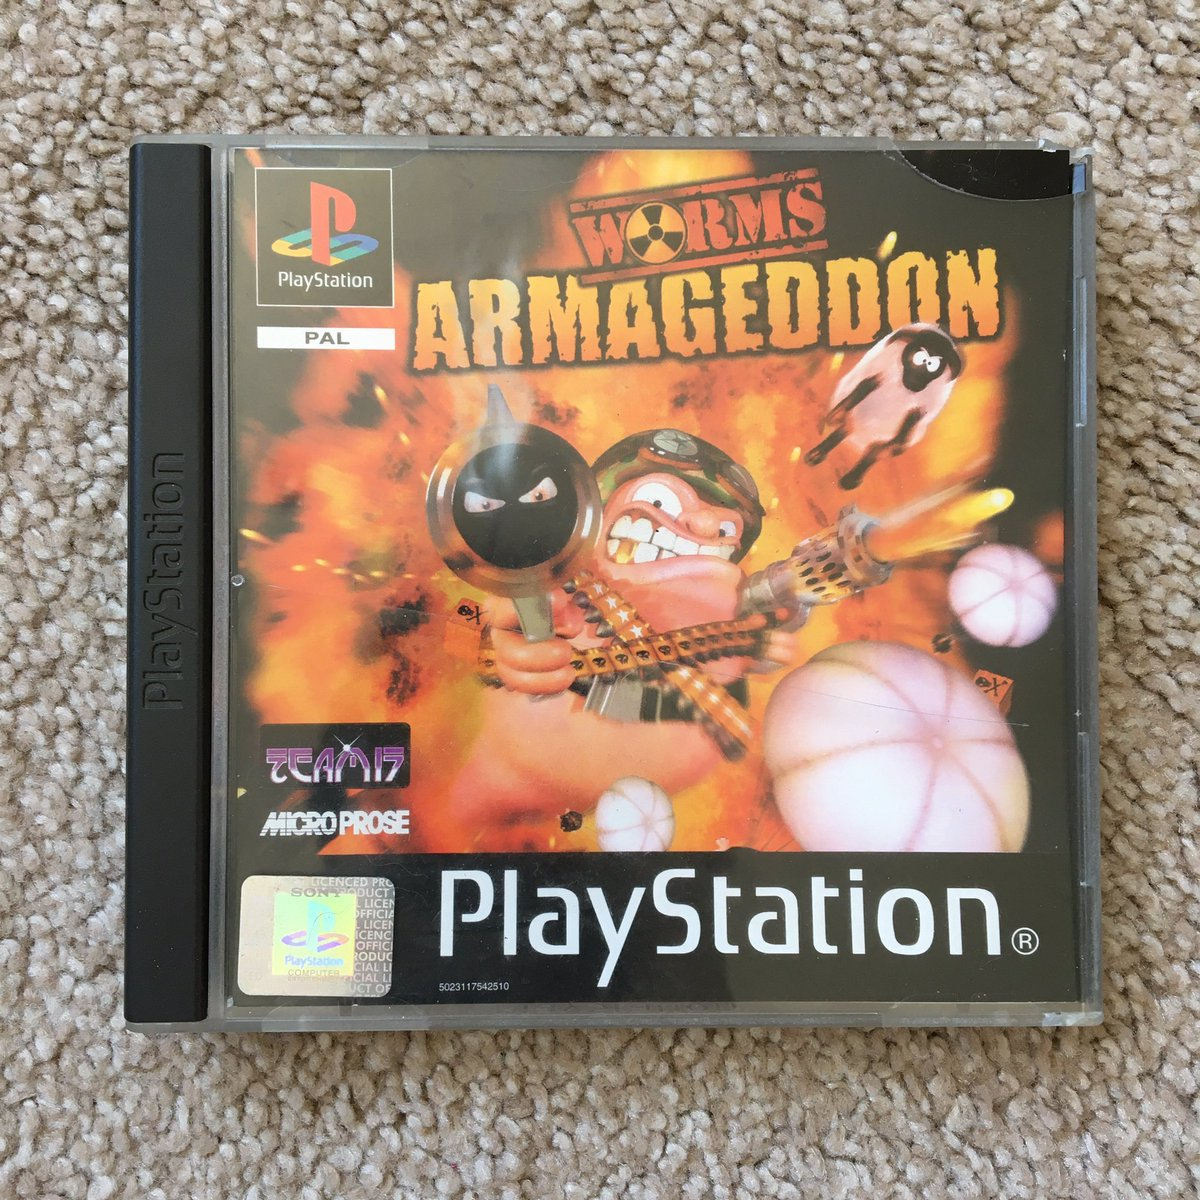 I also found this copy of Worms Armageddon at my mums house yesterday. #PS1Day #GamersUnite #RetroGaming https://t.co/LMUgX53zt8